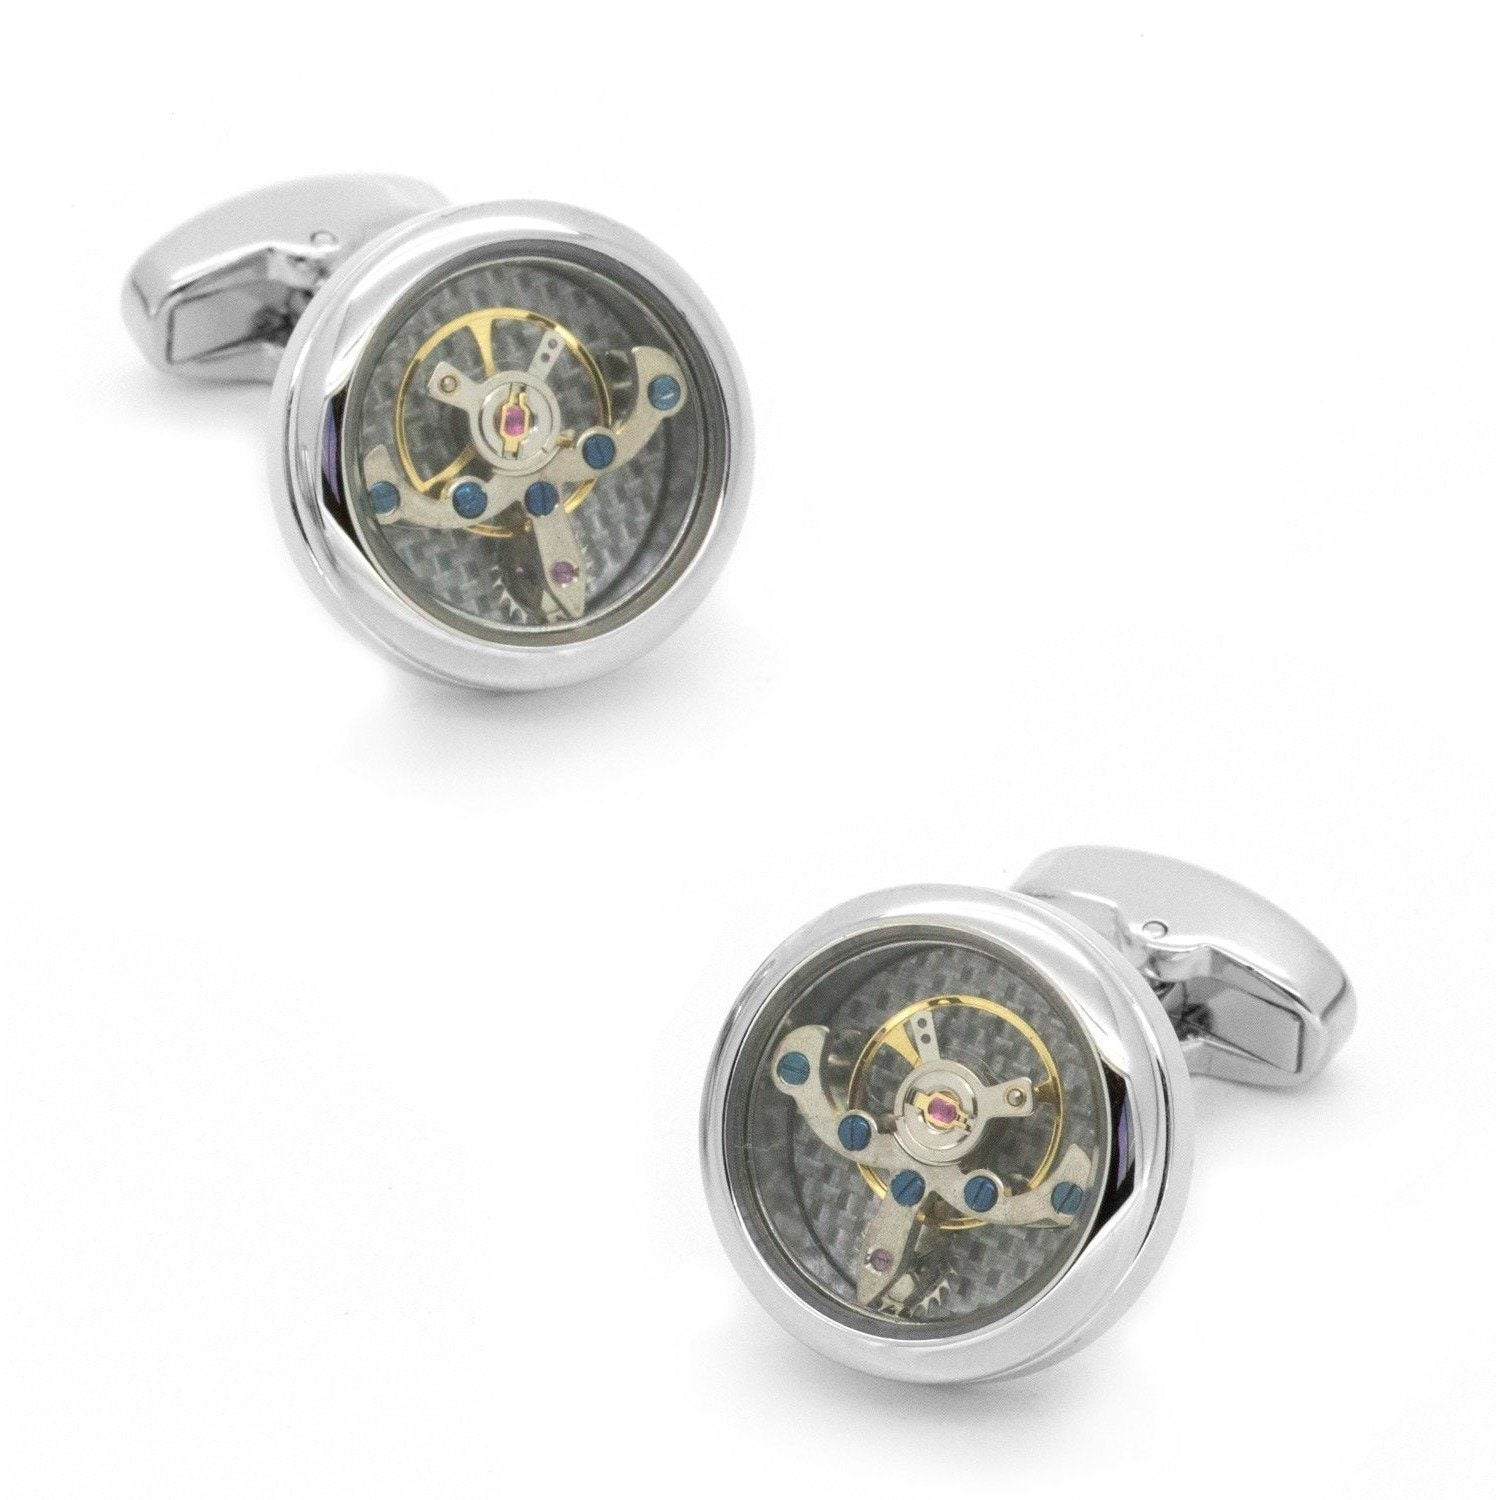 Tourbillon Watch Movement Cufflinks in Silver, Novelty Cufflinks, Cuffed.com.au, CL5580, $79.00